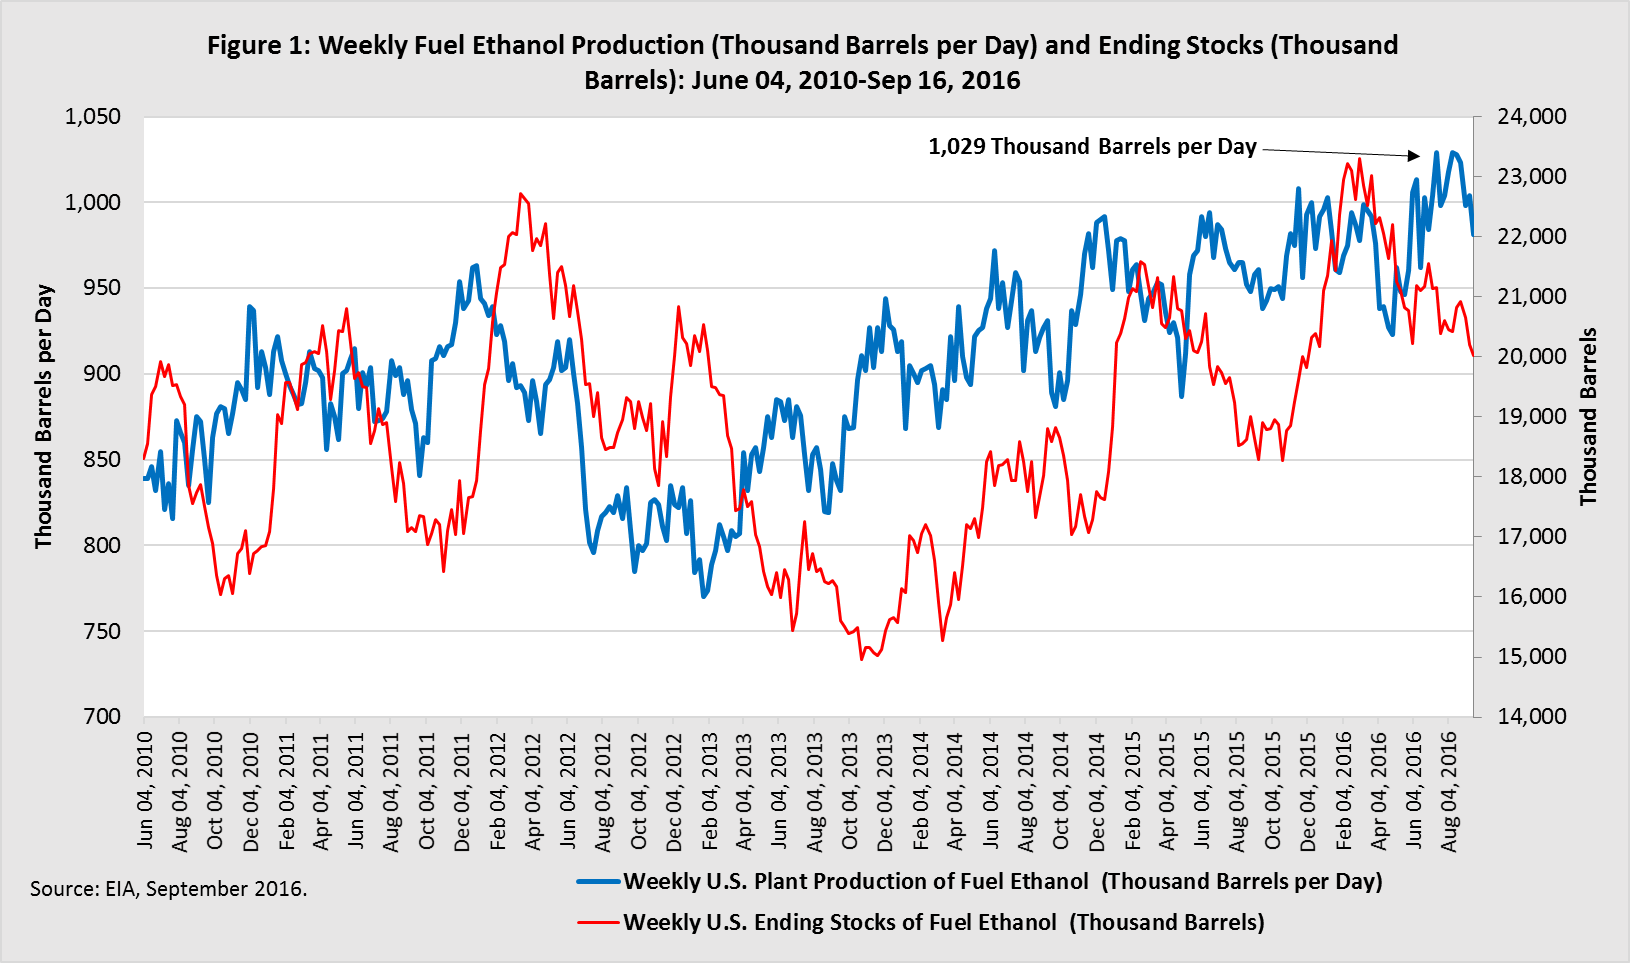 Weekly Fuel Ethanol Production and Ending Stocks